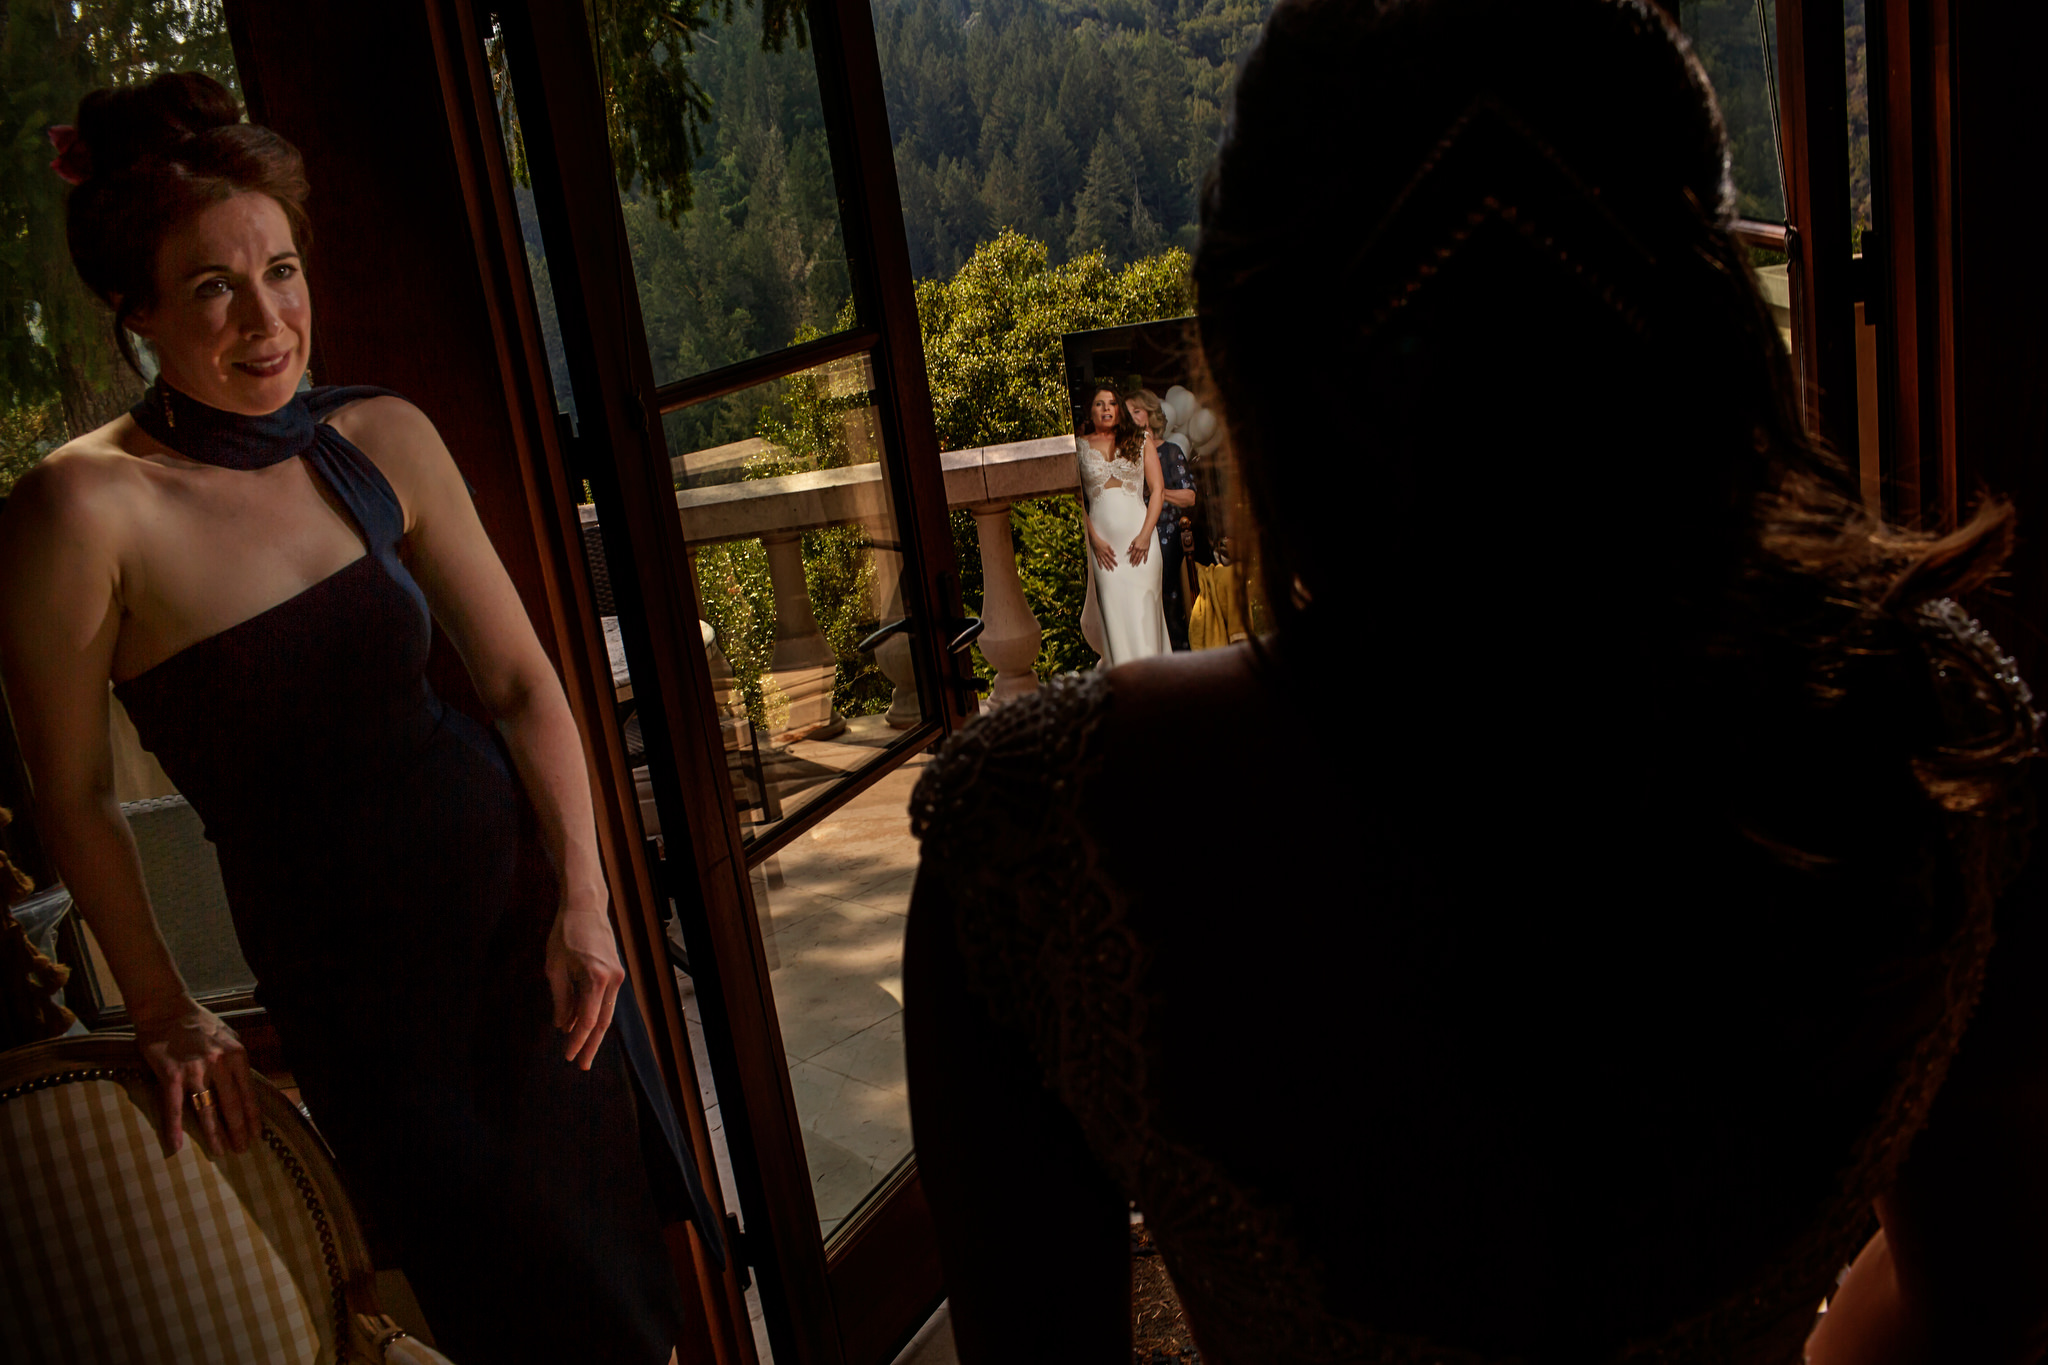 Emily and Chad's wedding in Napa Valley, California.